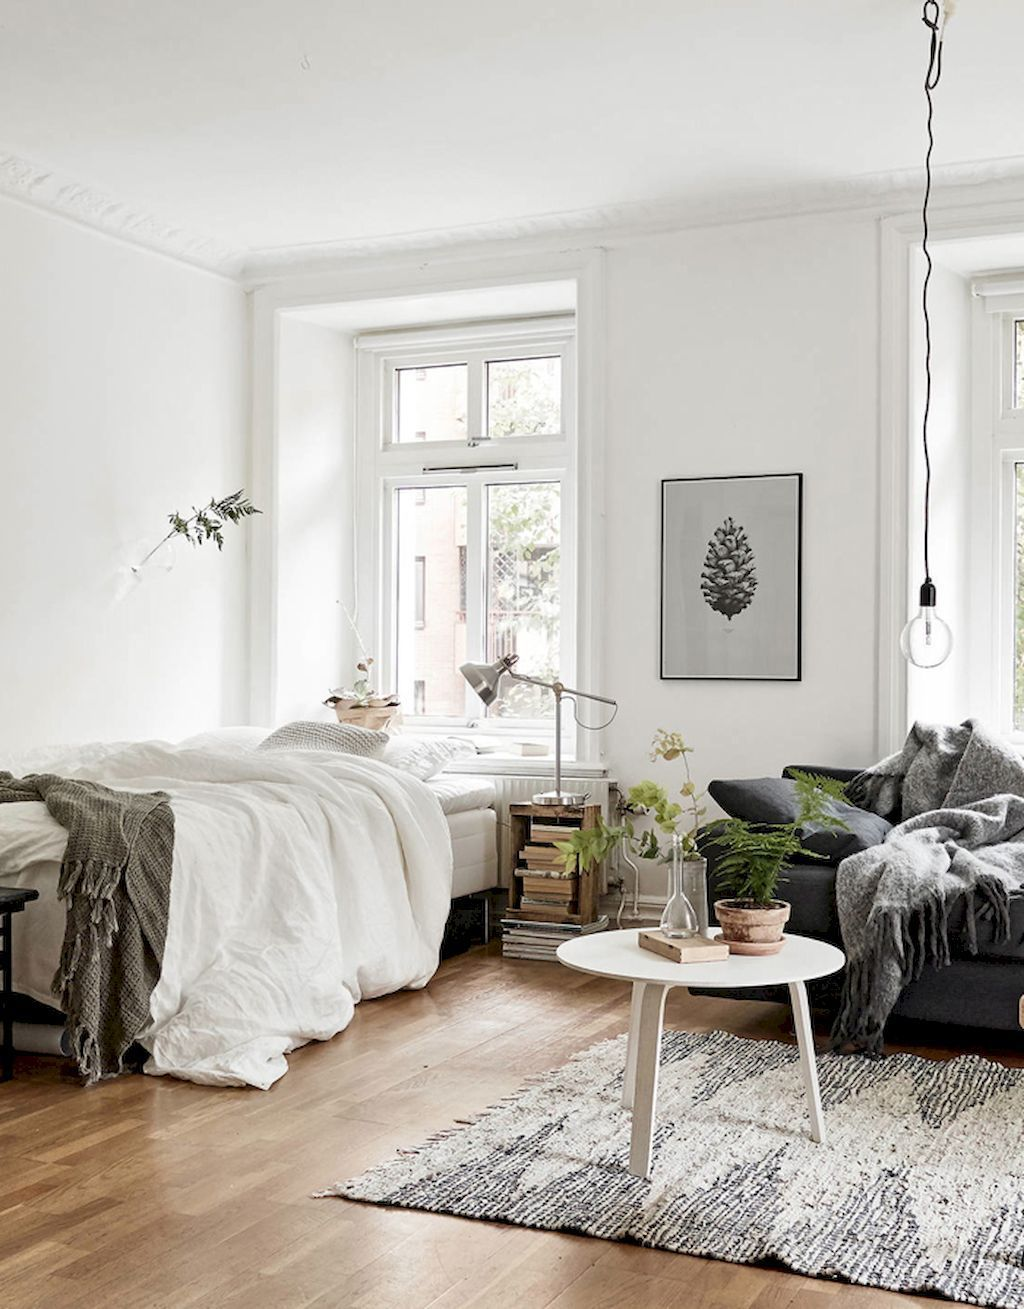 60 Cool Studio Apartment With Scandinavian Style Ideas On A Budget 30